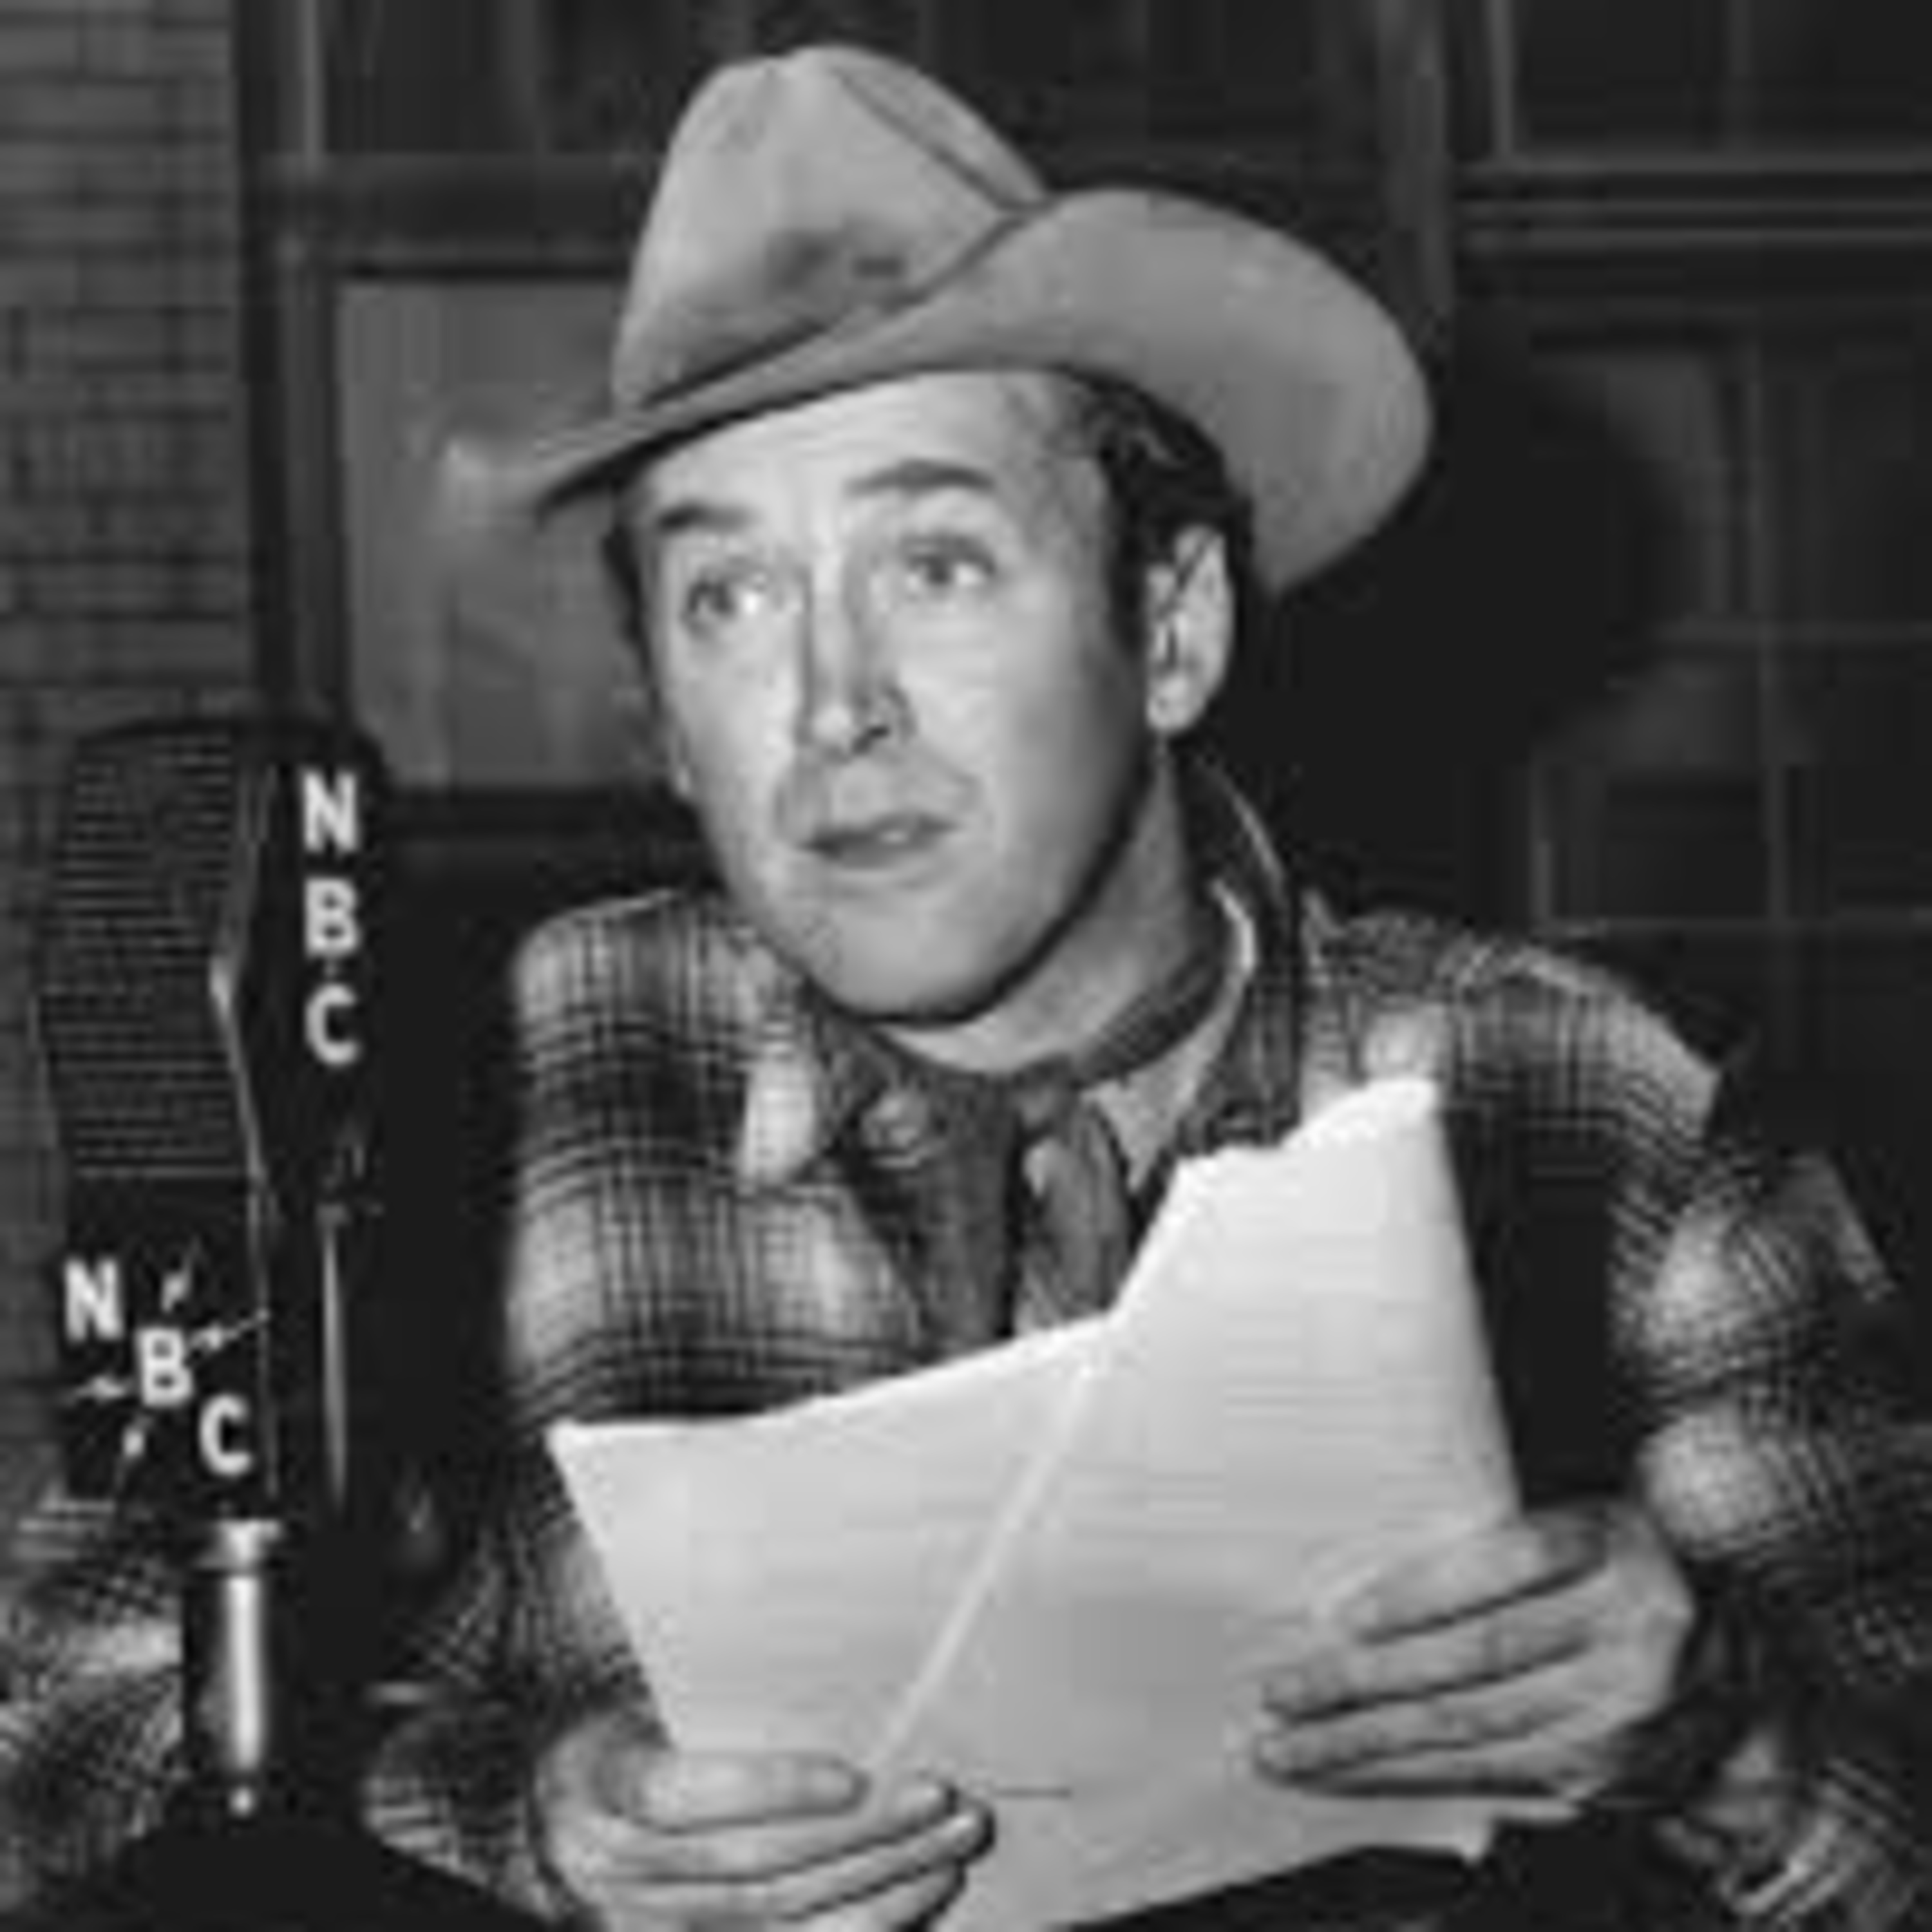 The Six Shooter Podcast - Jimmy Stewart - Audition Show - Jenny - The Coward